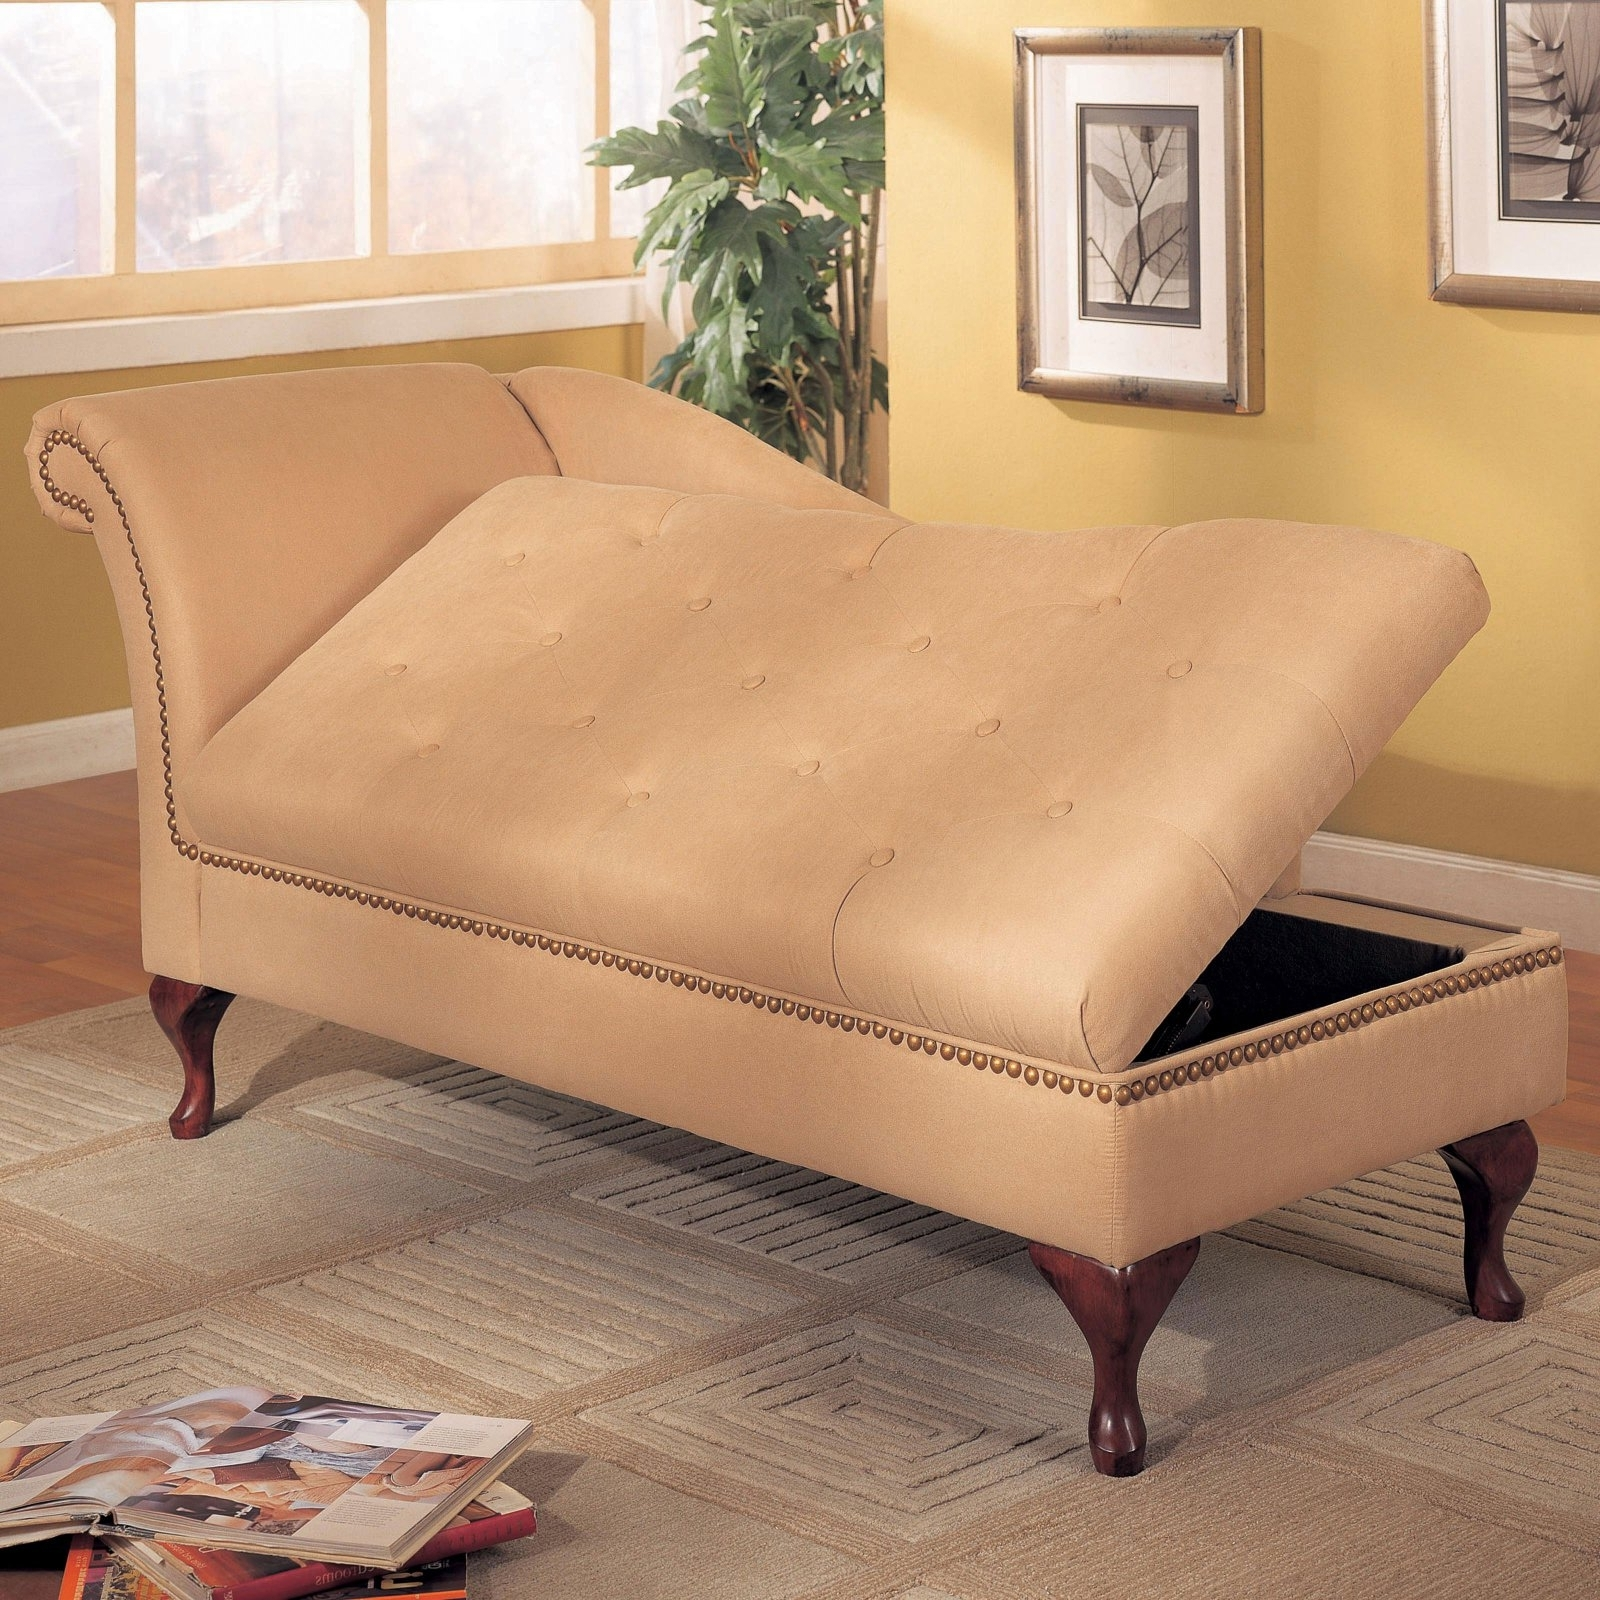 Widely Used Small Chaise Lounge Chair For Room Awesome Bedroom Chairs Ideas For Bedroom Chaise Lounge Chairs (View 15 of 15)